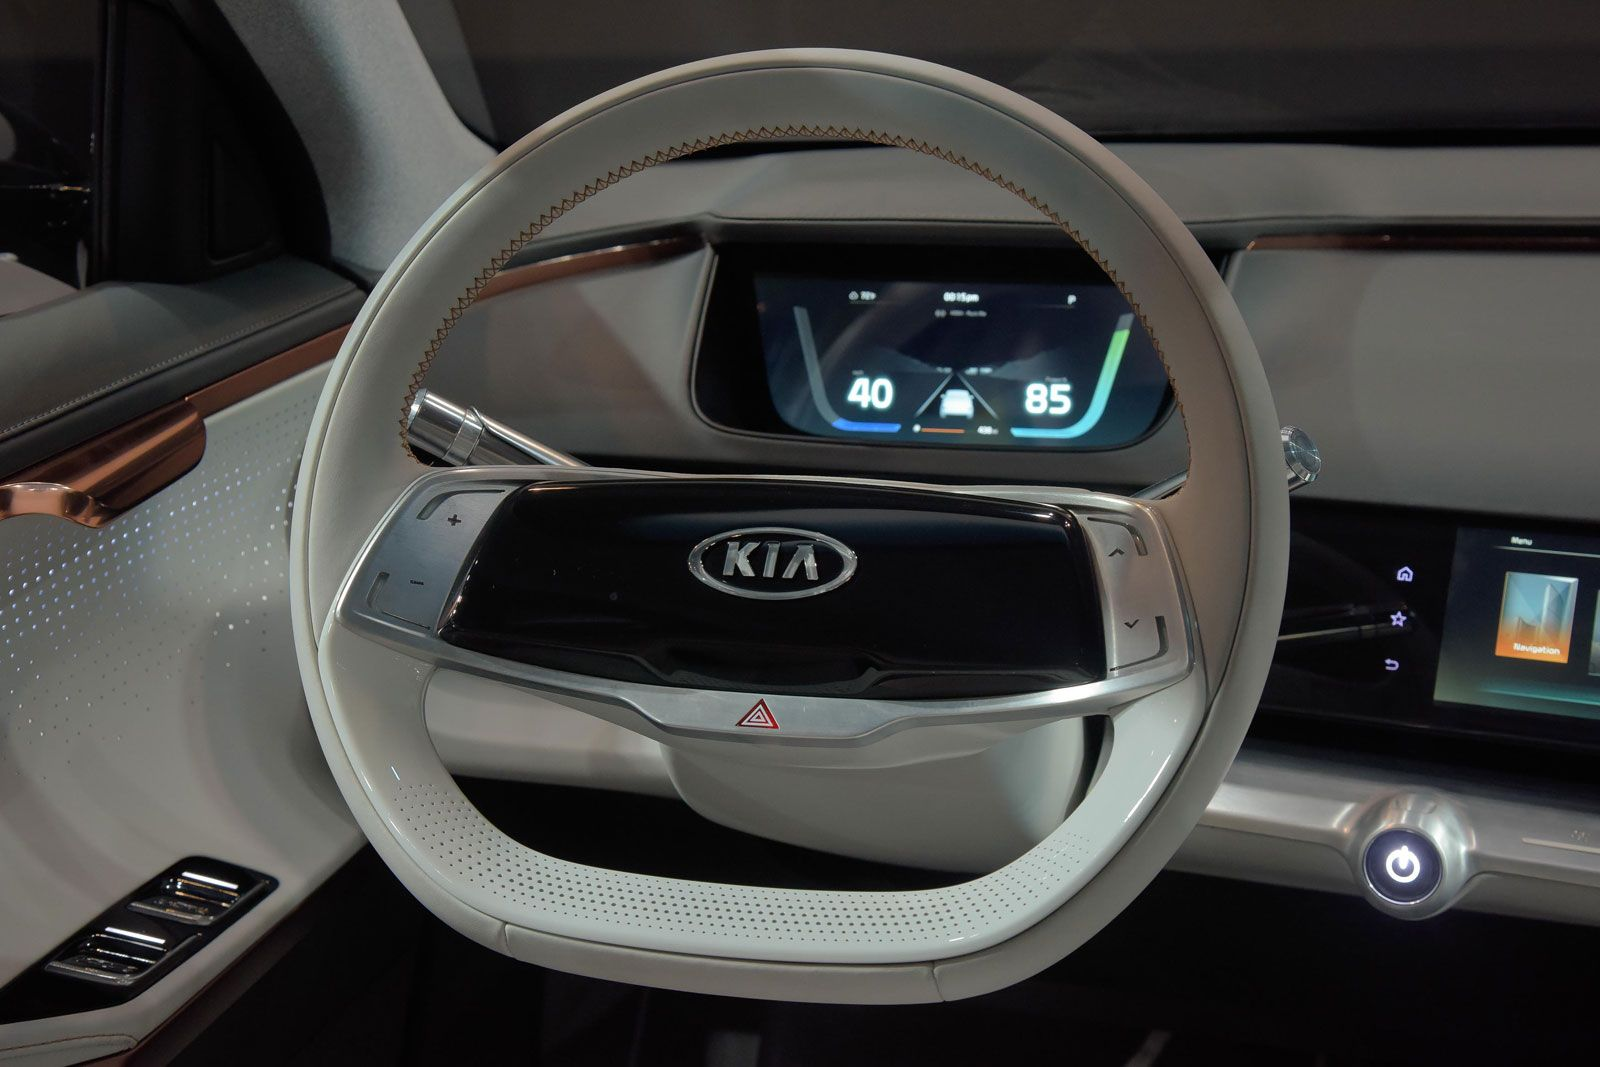 Kia Niro Ev Concept Interior Steering Wheel In 2020 Concept Cars Concept Car Interior Concept Cars Vintage